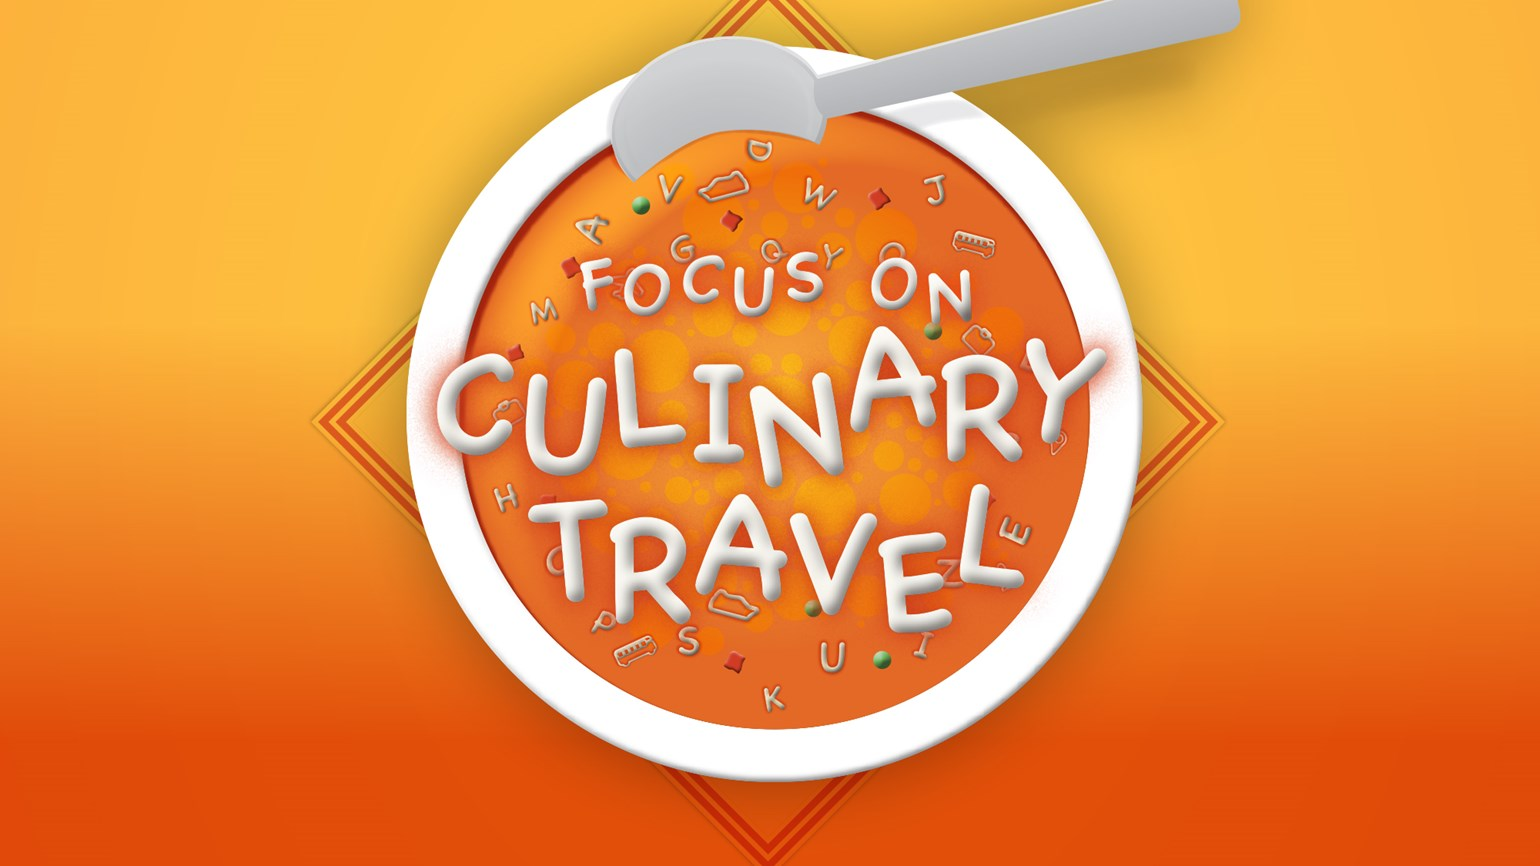 Focus On Culinary Travel: Exclusive Dining And Instagrammable Meals: Travel Weekly photo